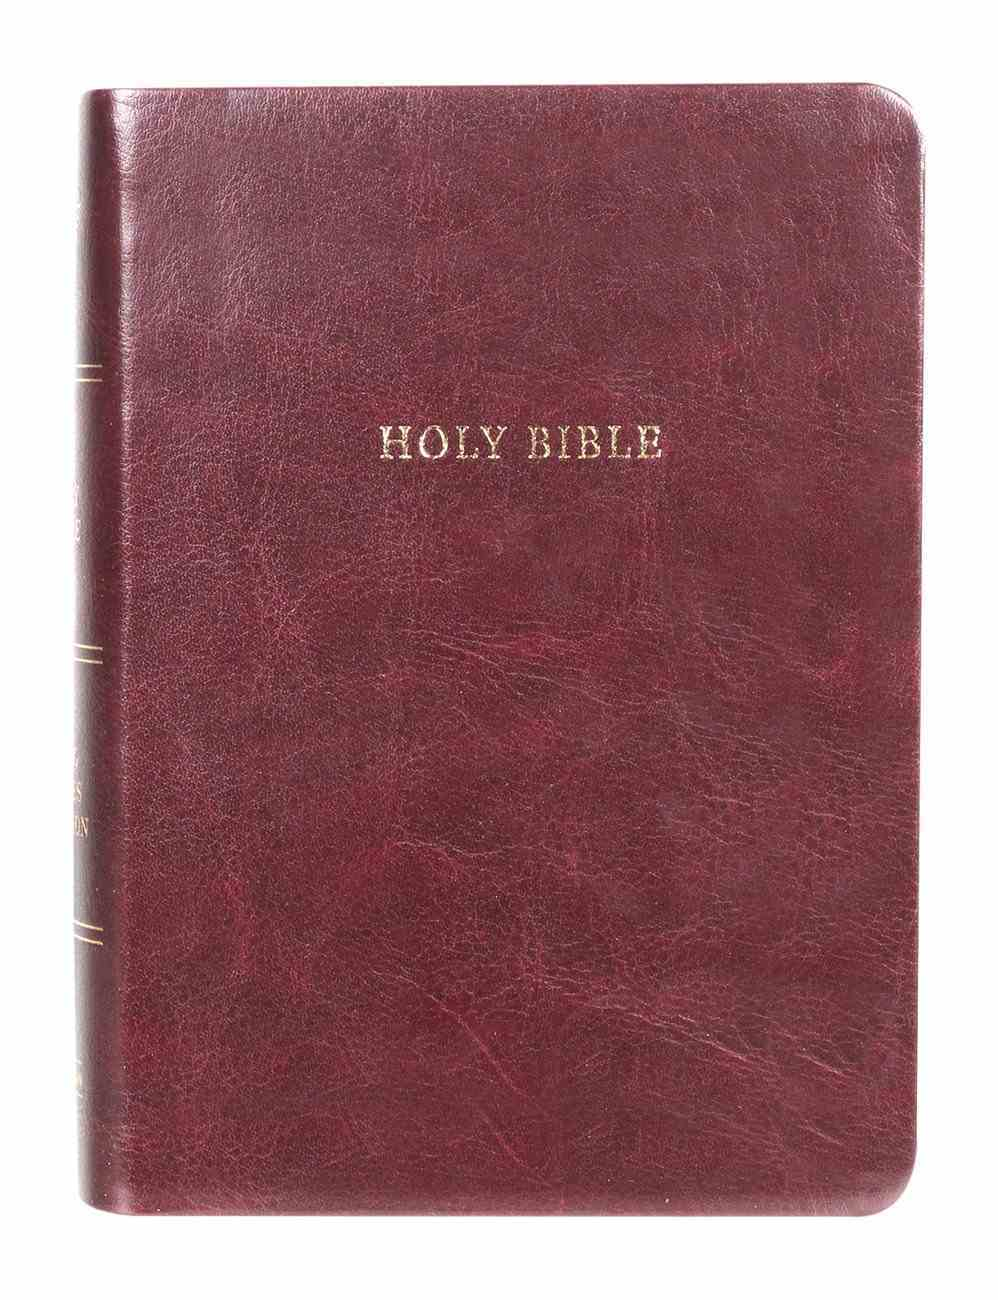 KJV Large Print Compact Reference Bible (Red Letter Edition) Imitation Leather